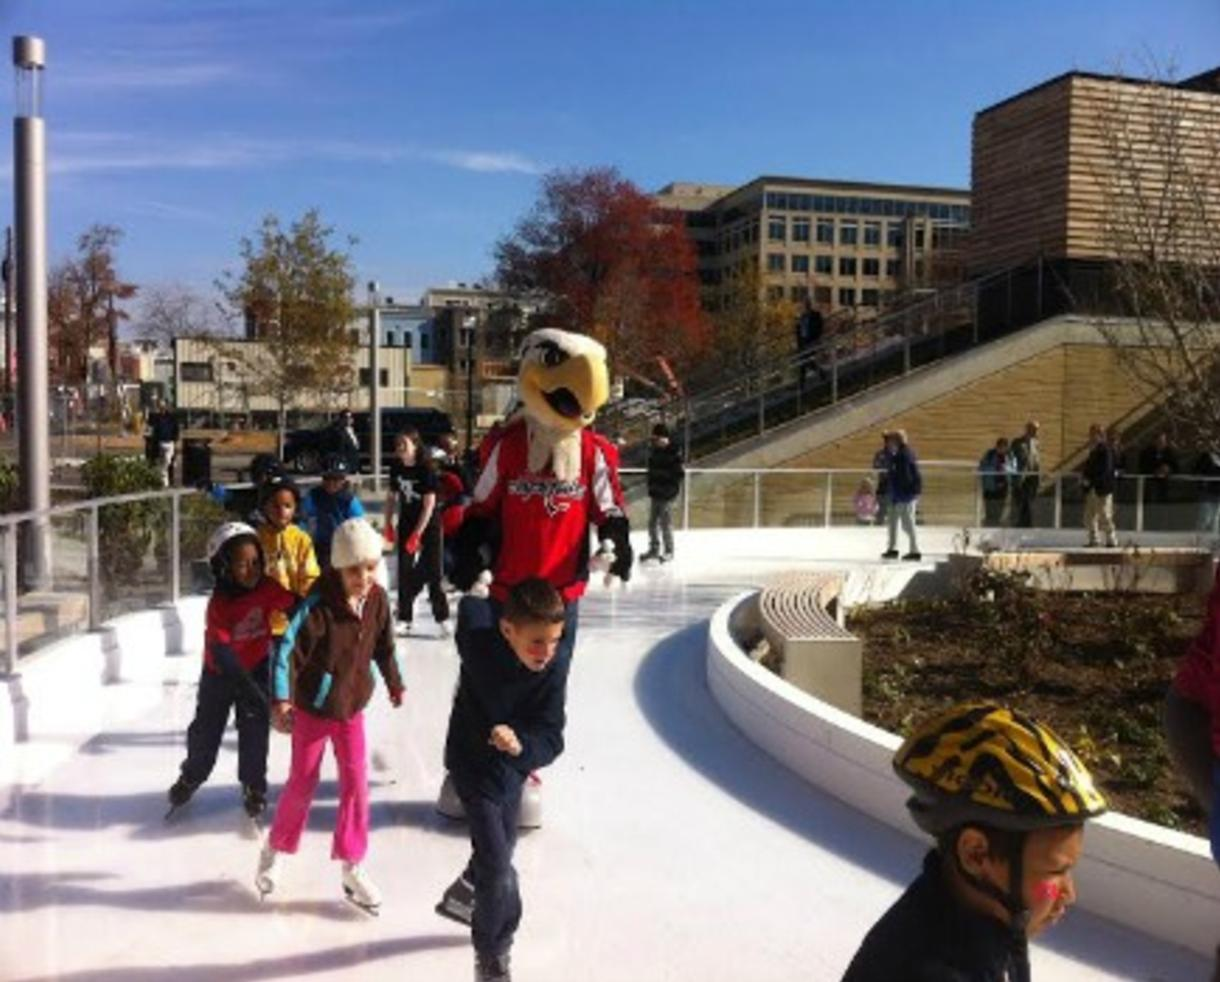 $14 for 2 Admissions - Adult or Child - Including Ice Skate Rentals at Canal Park Ice Rink ($28 Value - 50% Off)